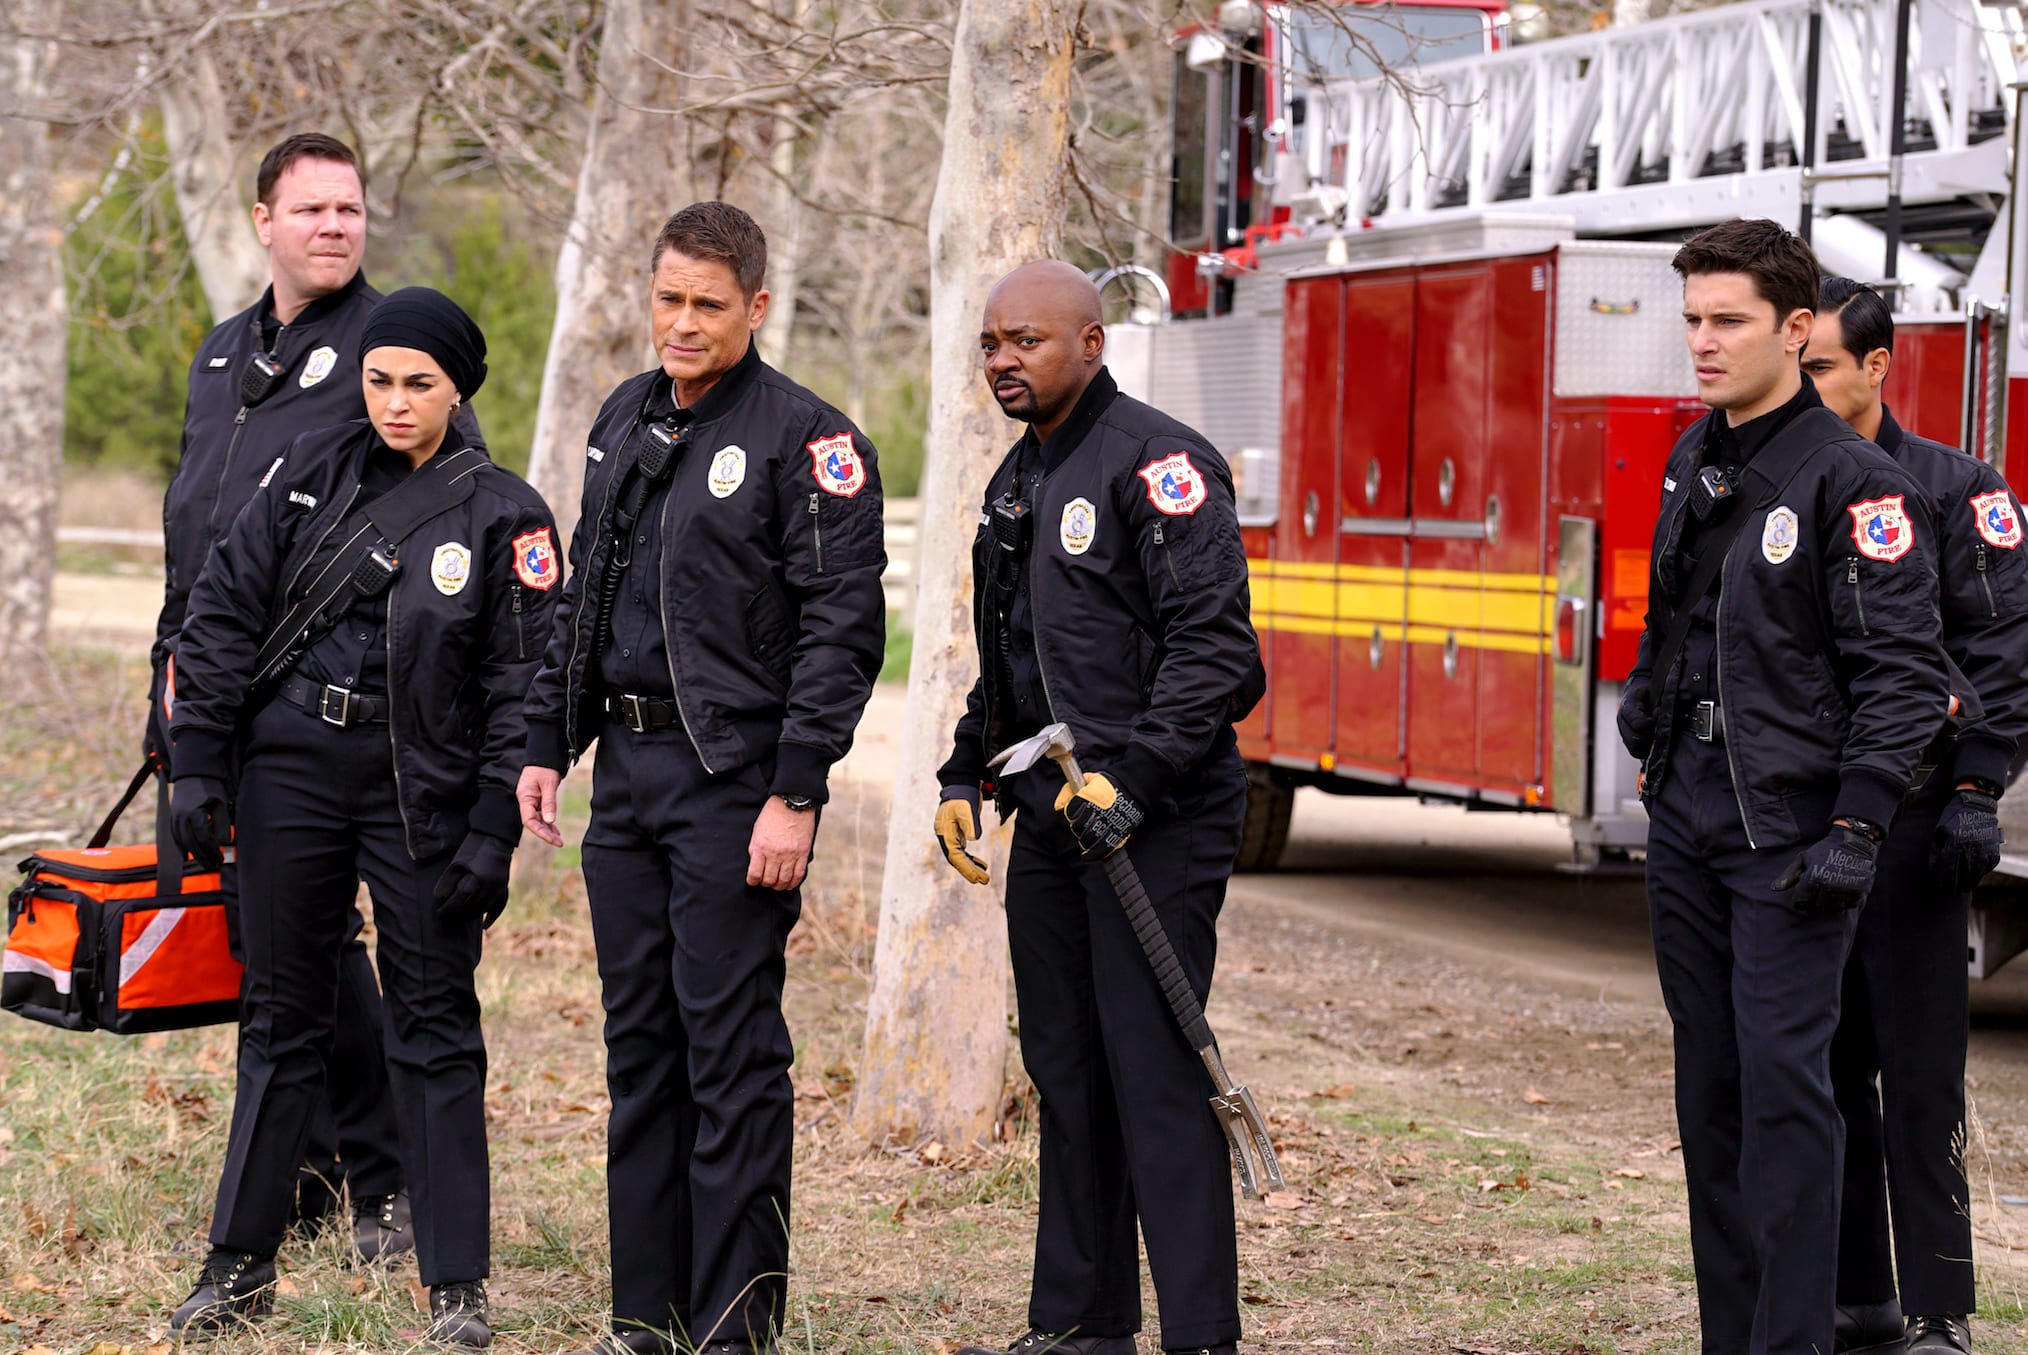 911 Lone Star Season 2 Episode 10 Release Date and Spoilers